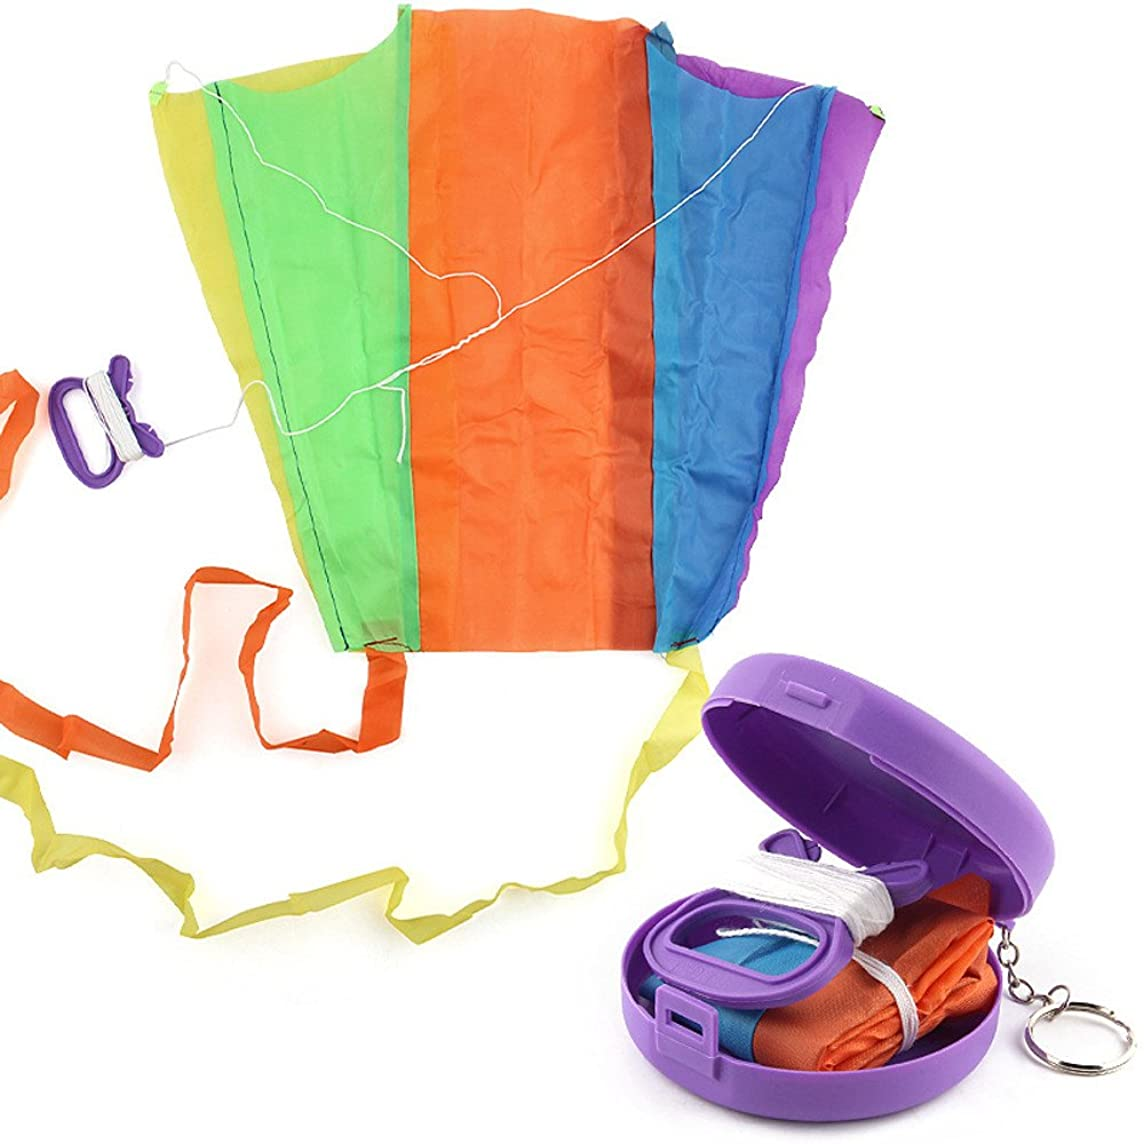 Sunny&Love 2018 Earth Kite Beautiful Large Easy Flyer Kite Supplest Pocket Kite Toy for Baby Kids